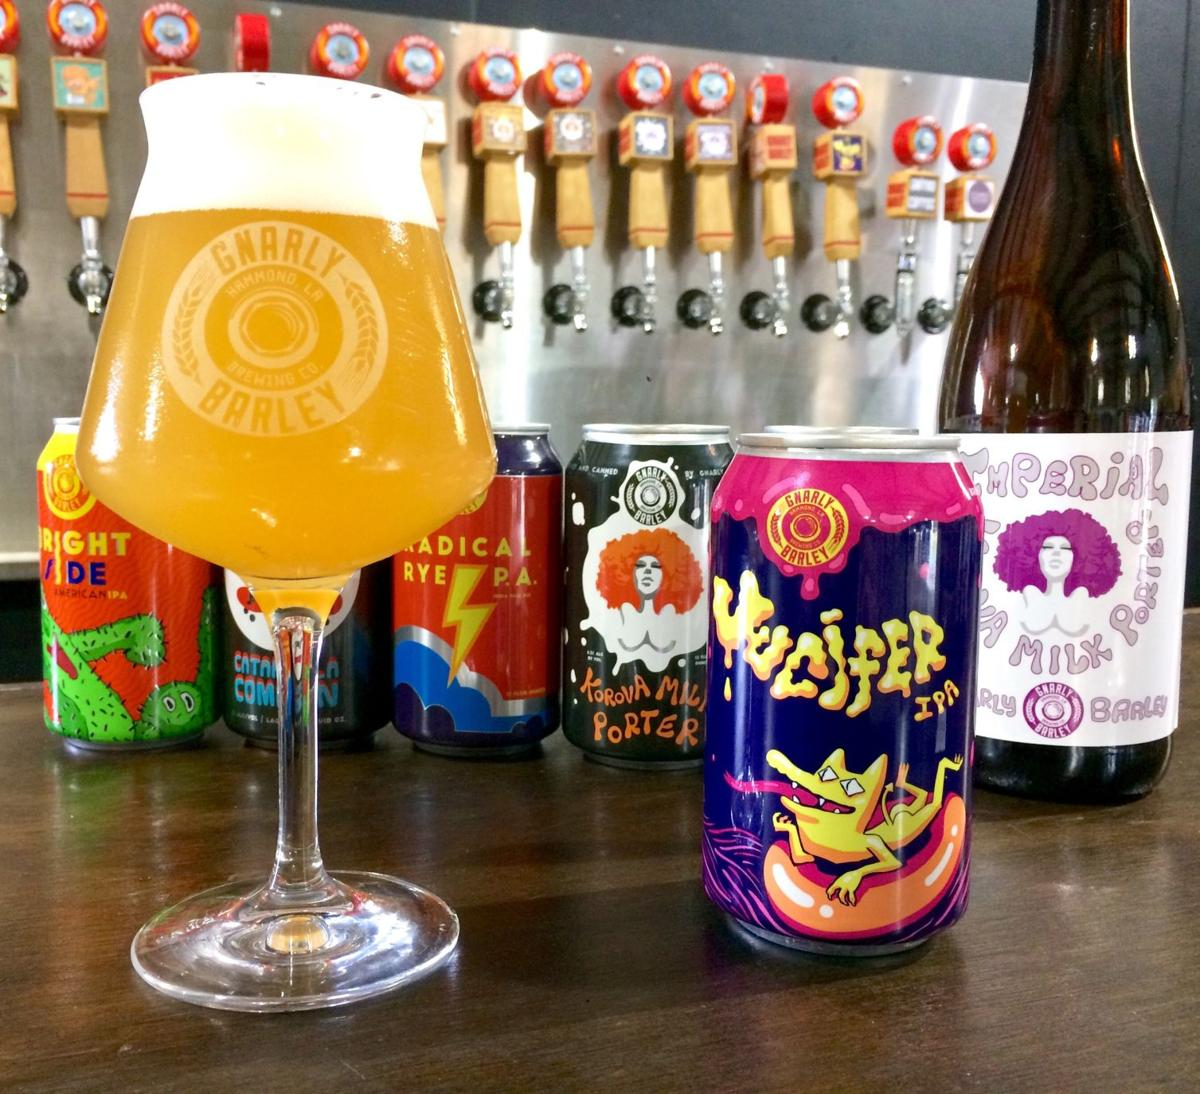 Promo: Gnarly Barley Brewing Co._lowres